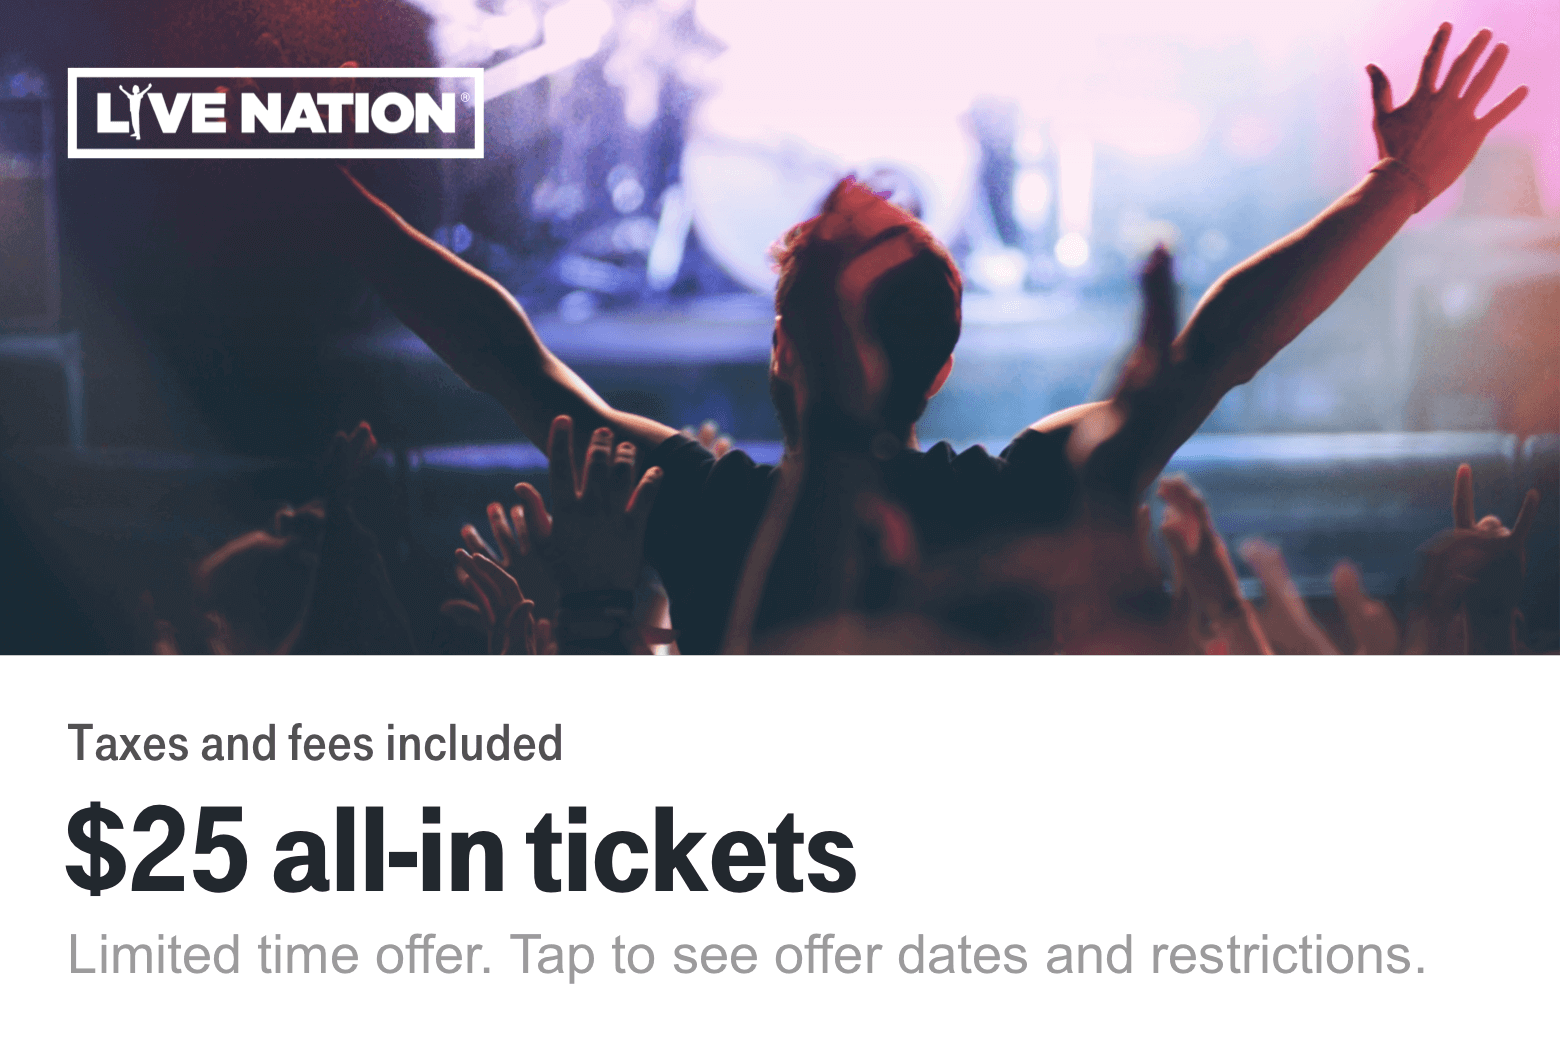 Taxes and fees included. $25 all-in tickets. Limited time offer. Tap to see offer dates and restrictions.